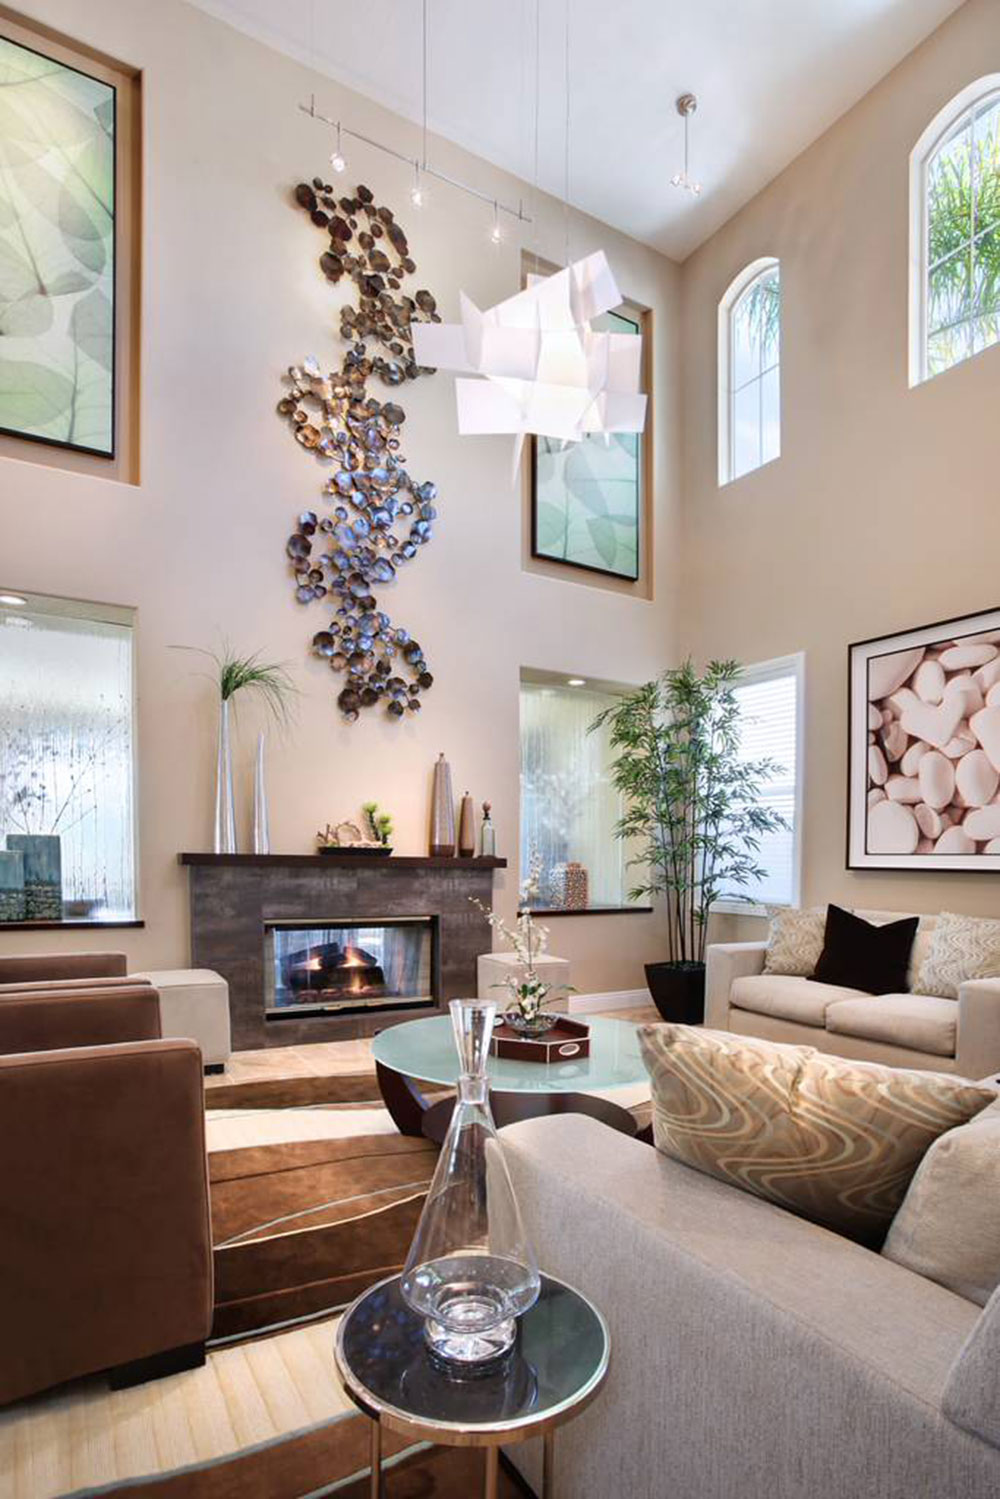 Marvelous Decorating A Room With High Ceiling High Ceiling Rooms And Decorating